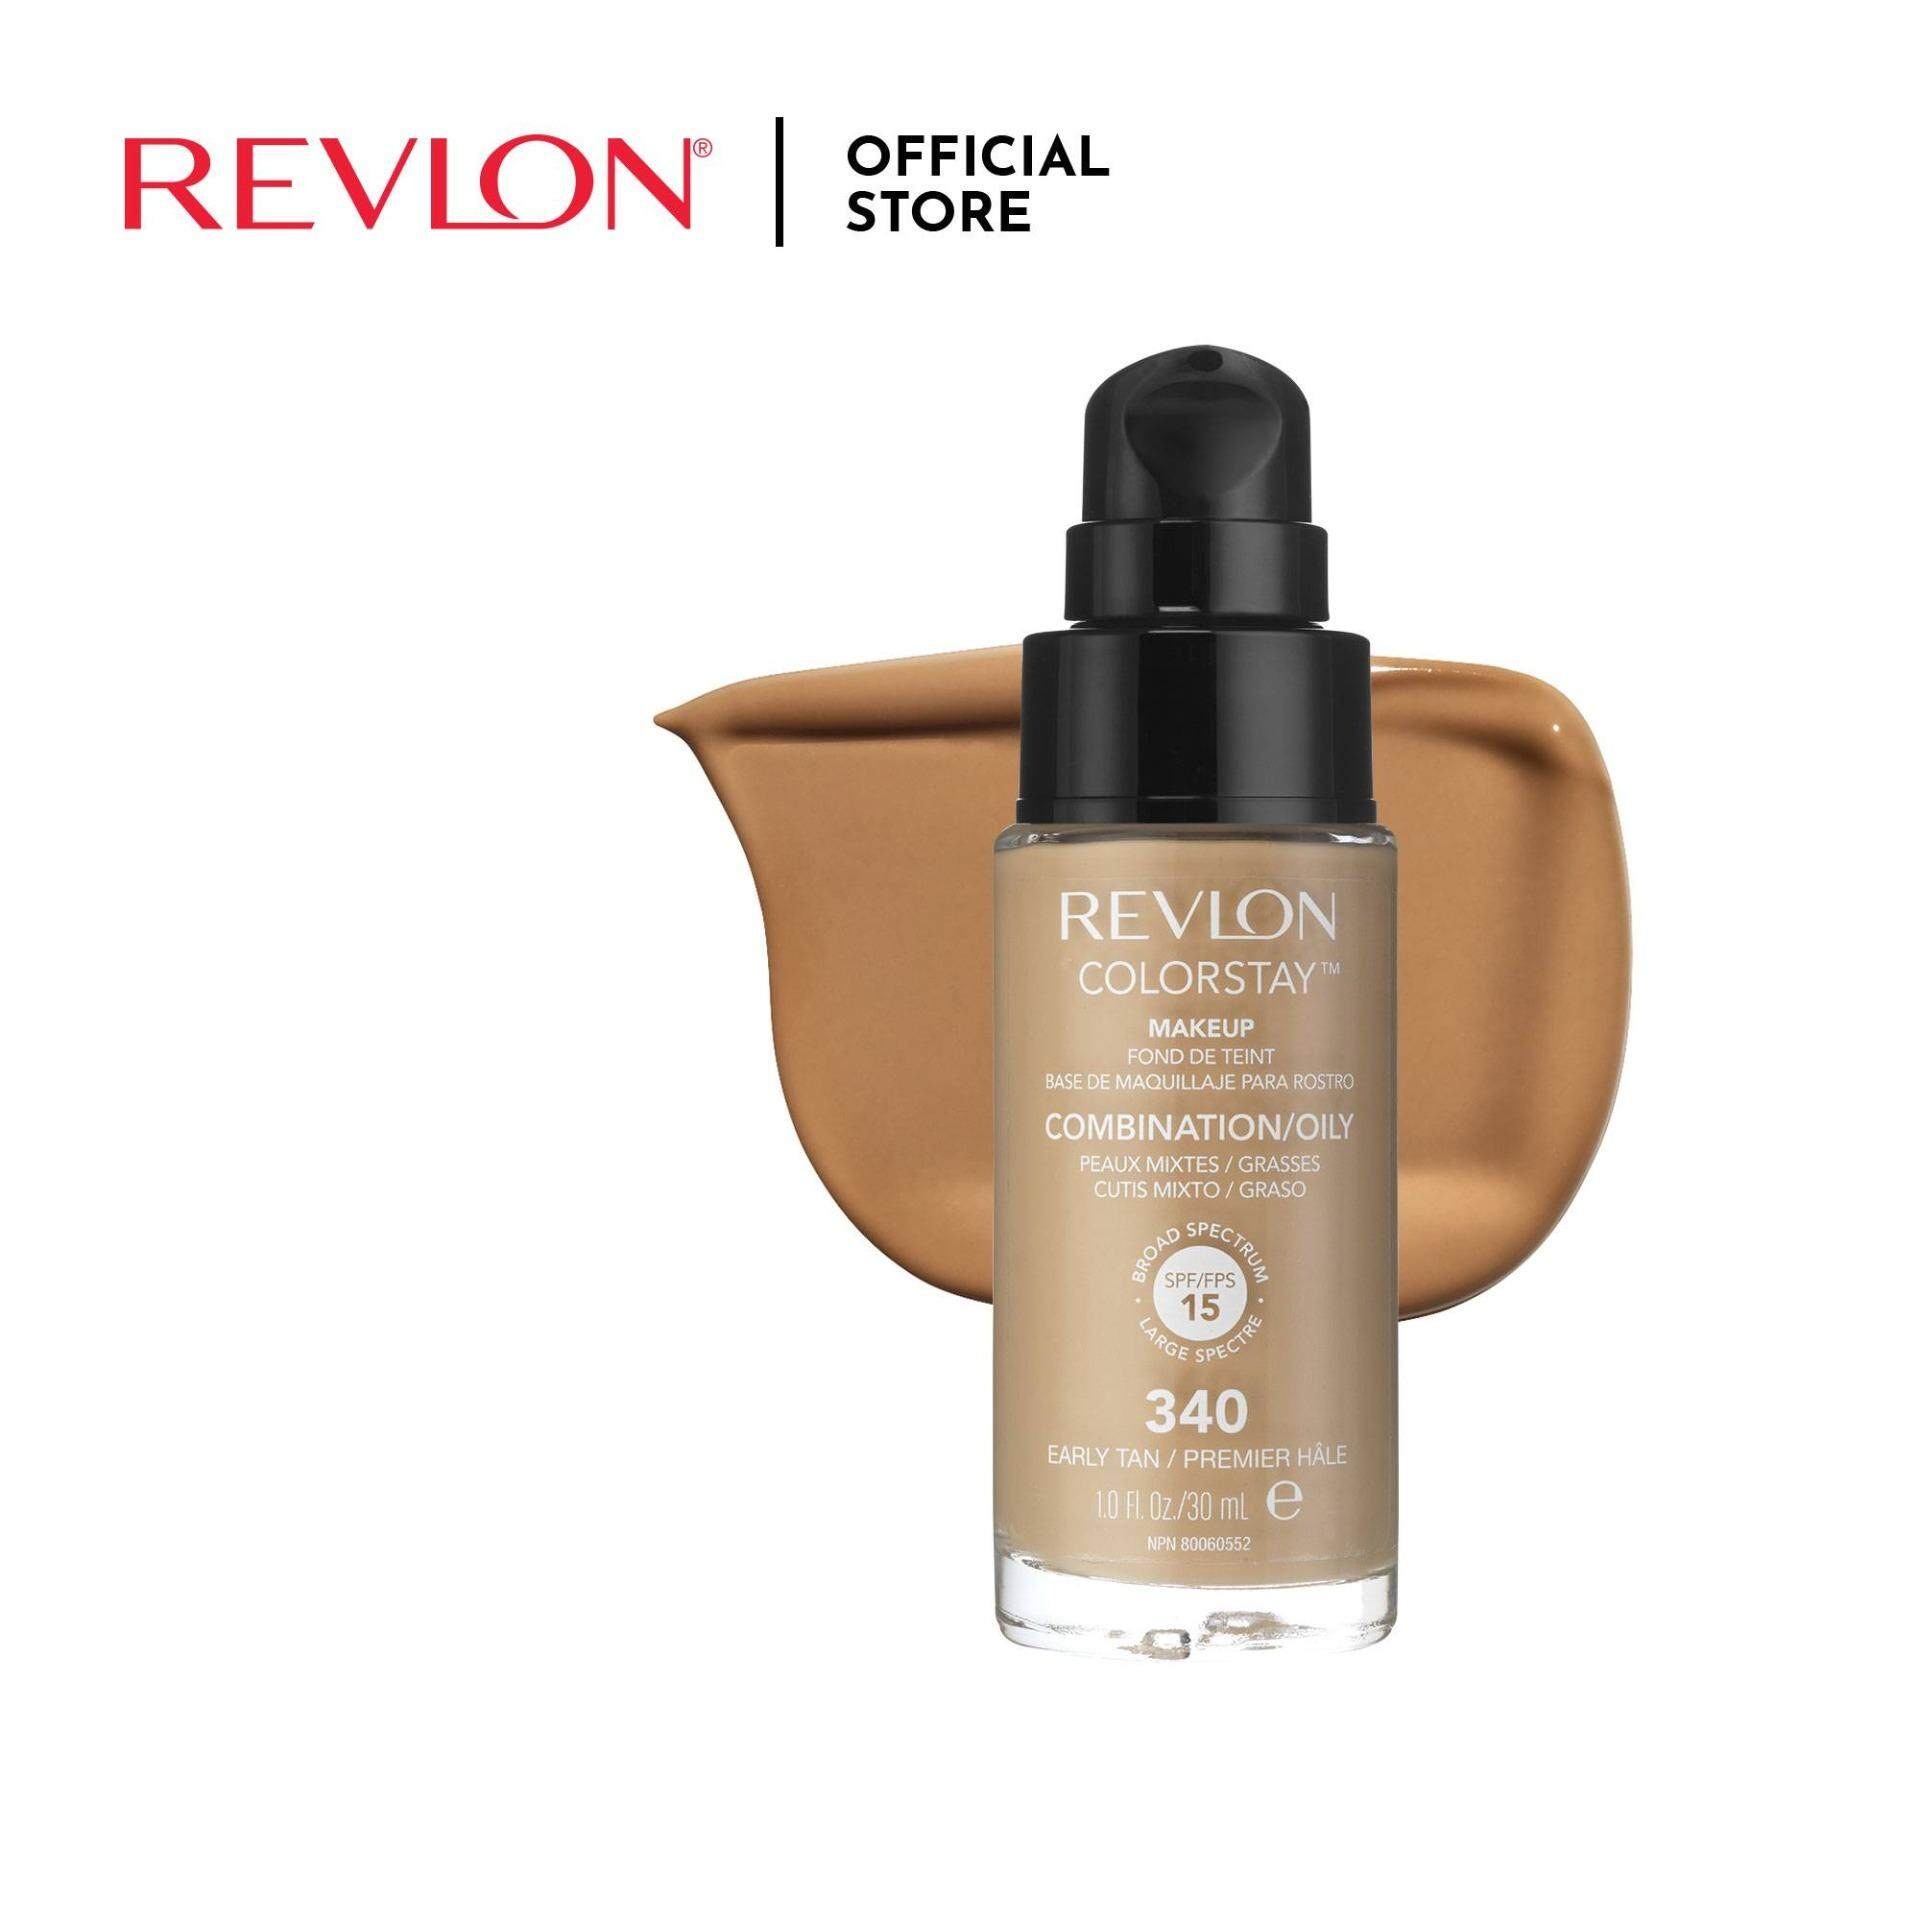 Revlon Colorstay MakeUp Oily / Combination - Early Tan 340